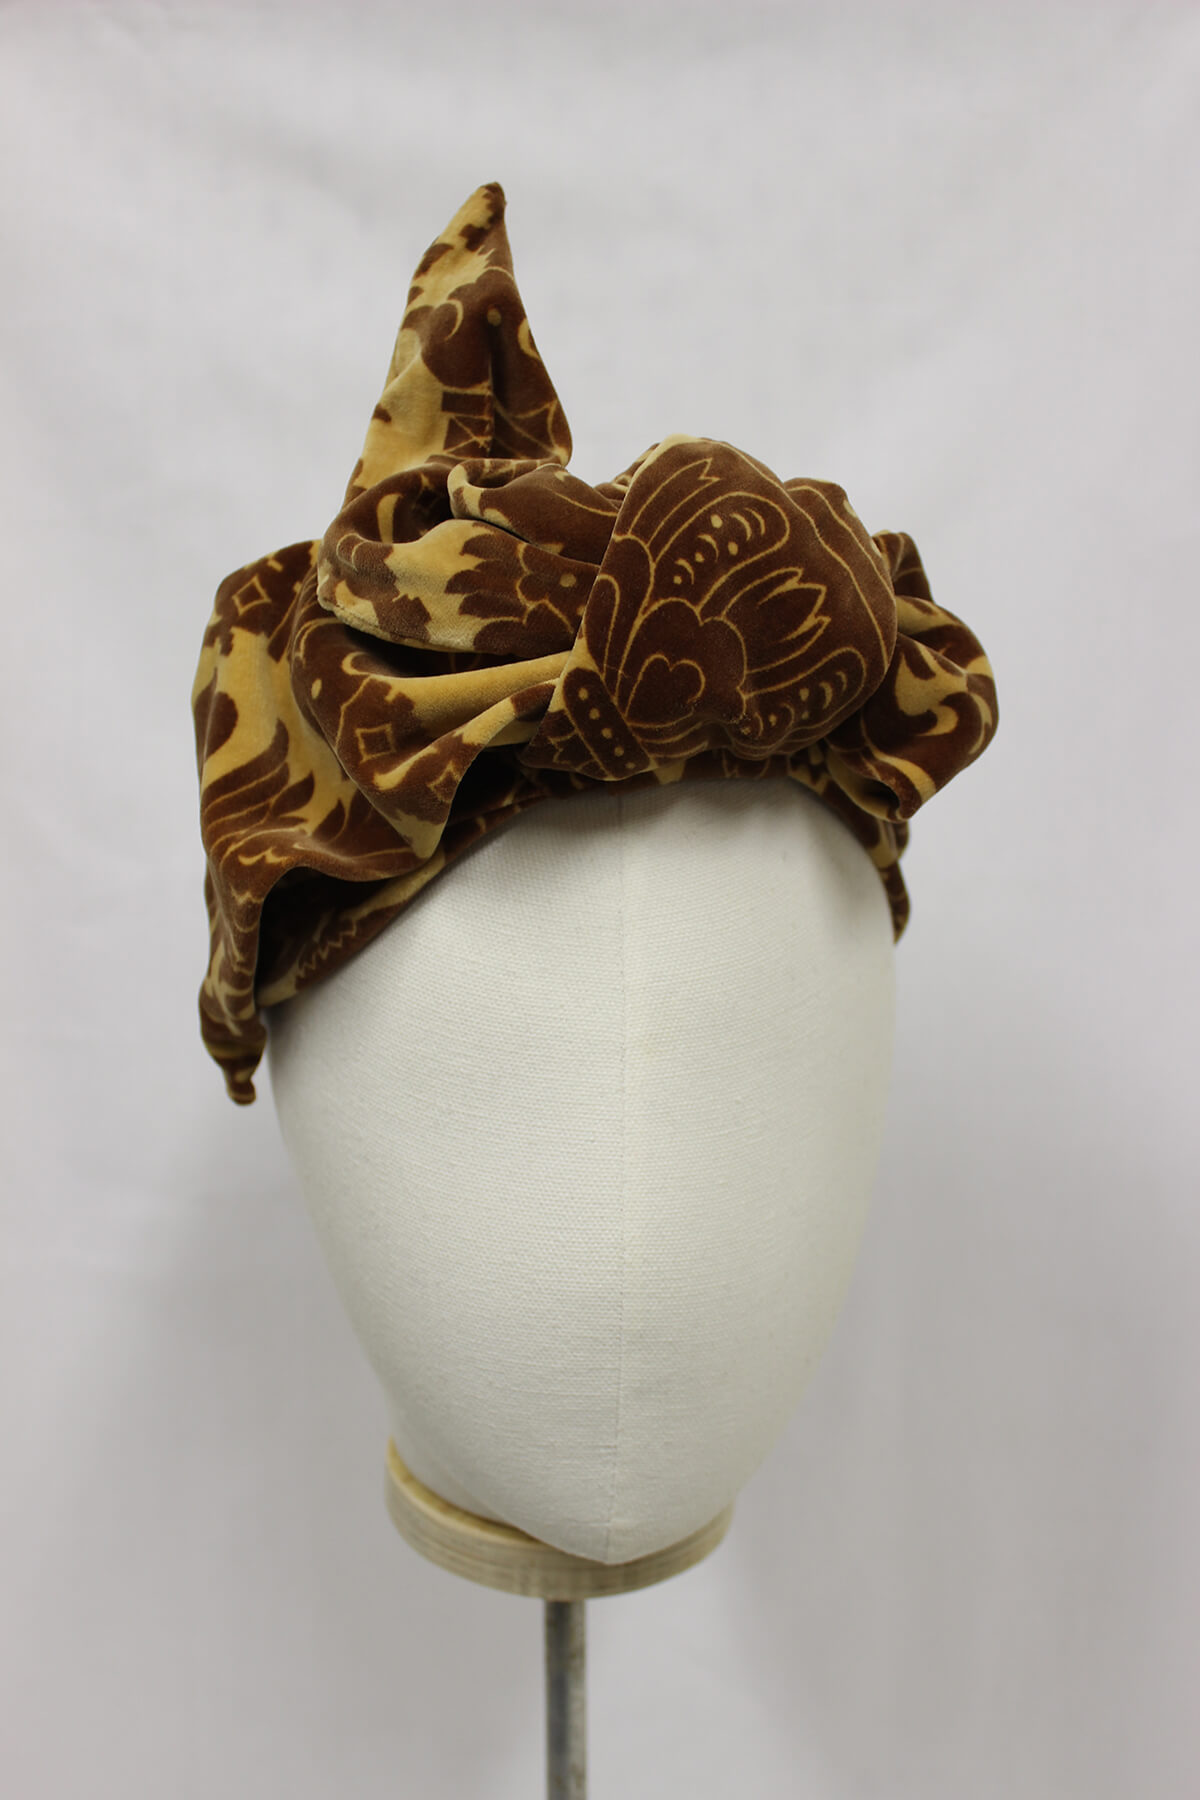 Hair wrap millinery available to buy.